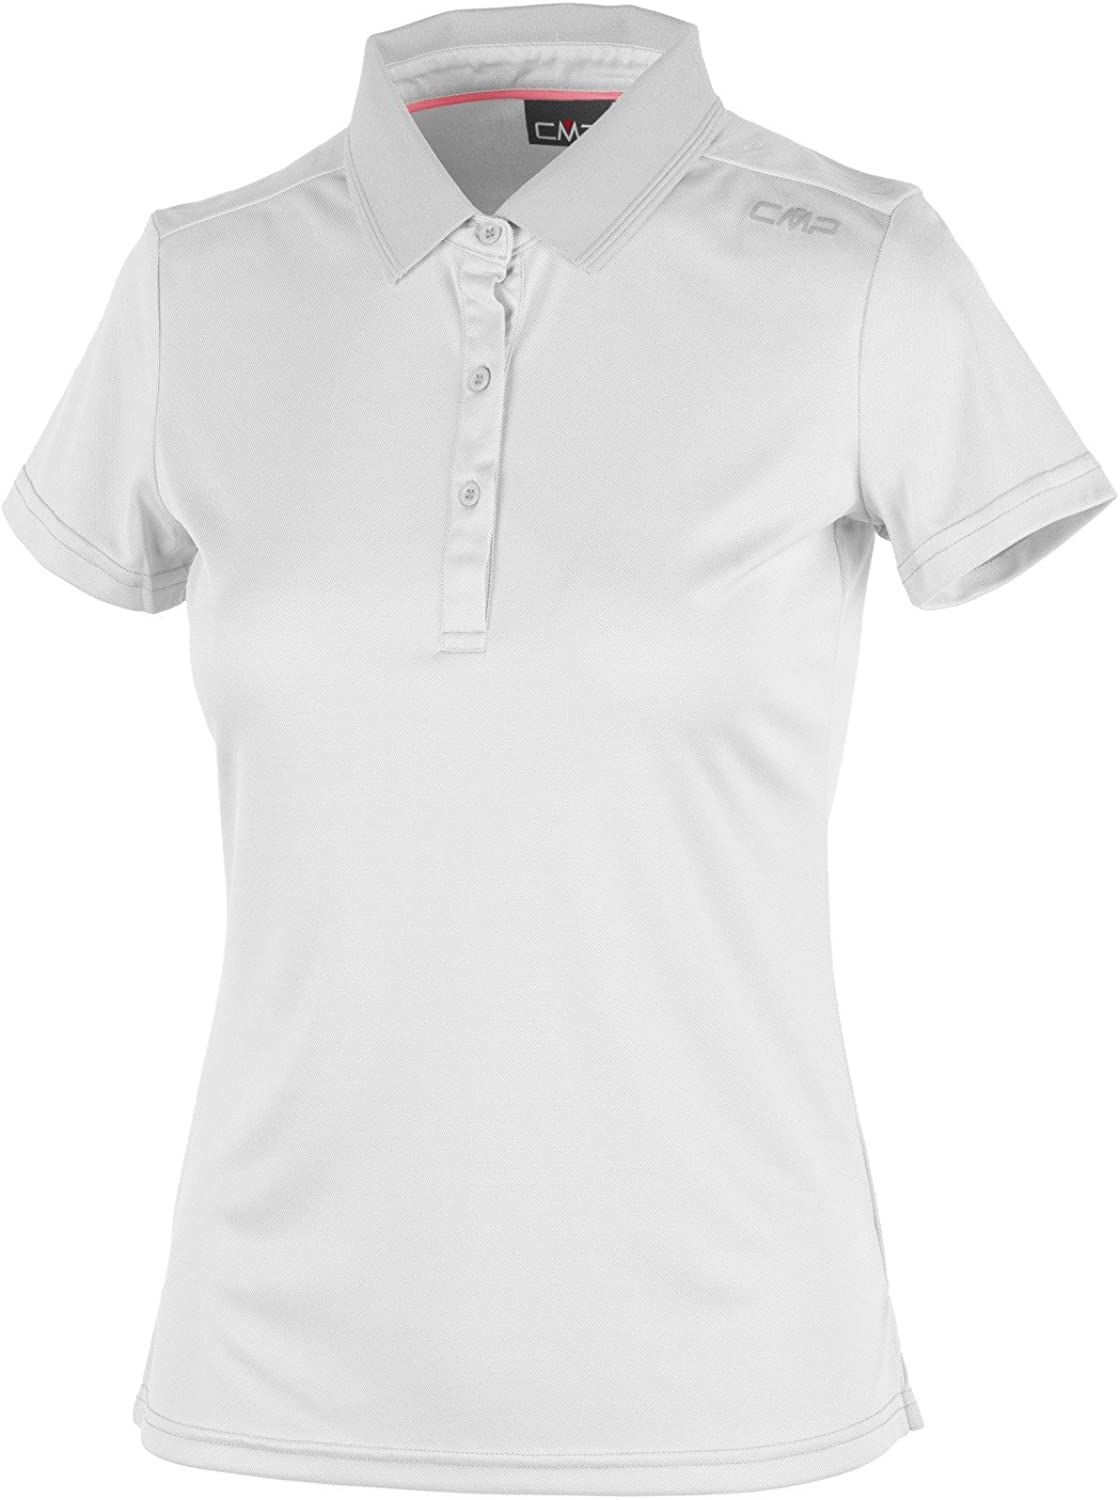 CMP Mujer 3t58476/Â/Polo